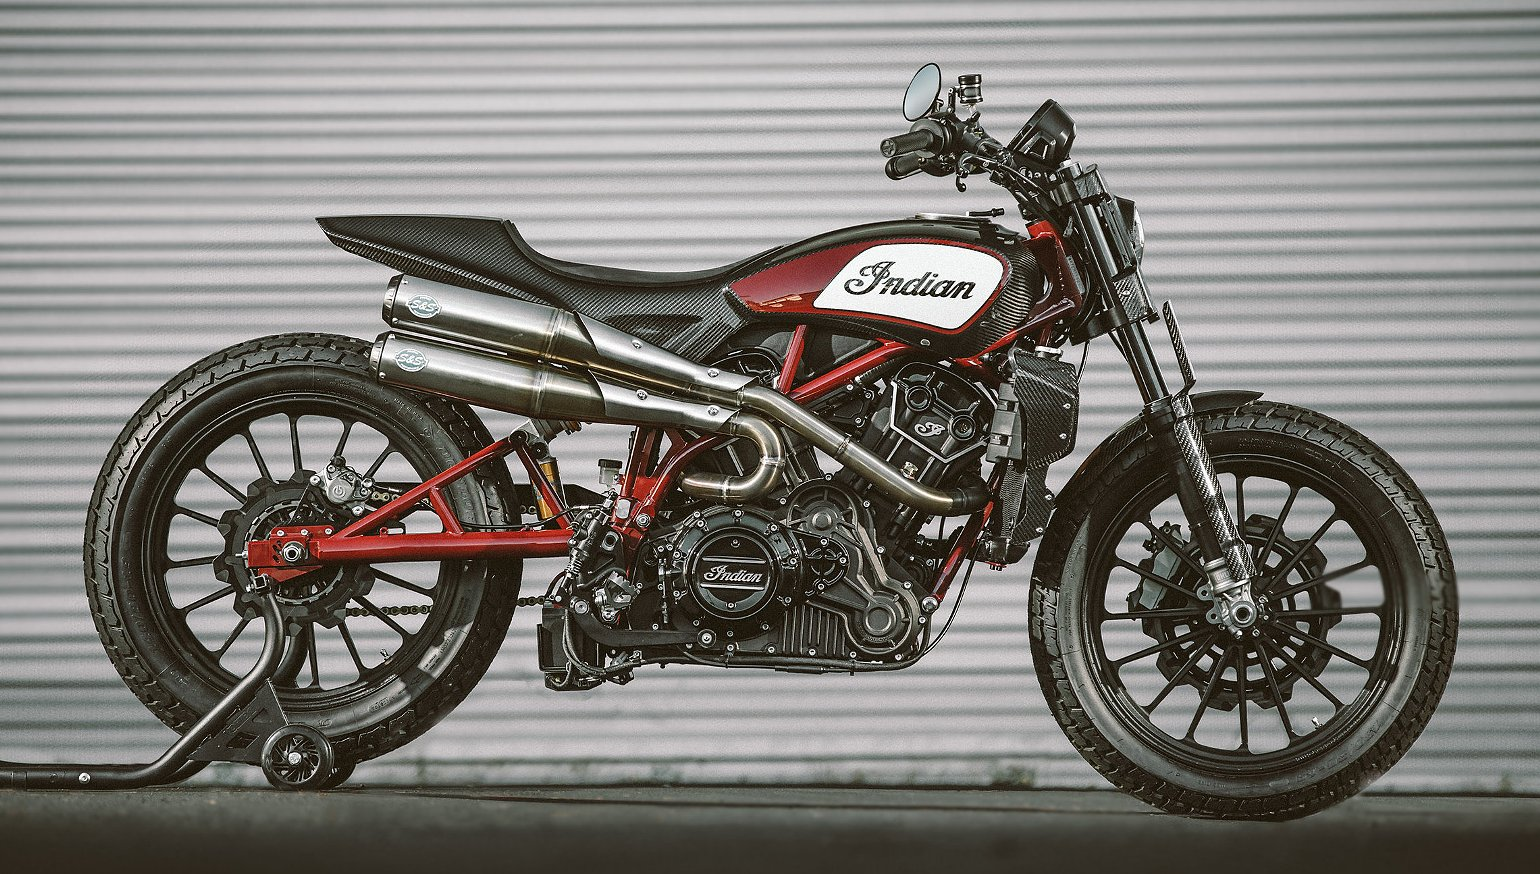 Indian built the bike Lemmy asked for, but is it real? - RevZilla